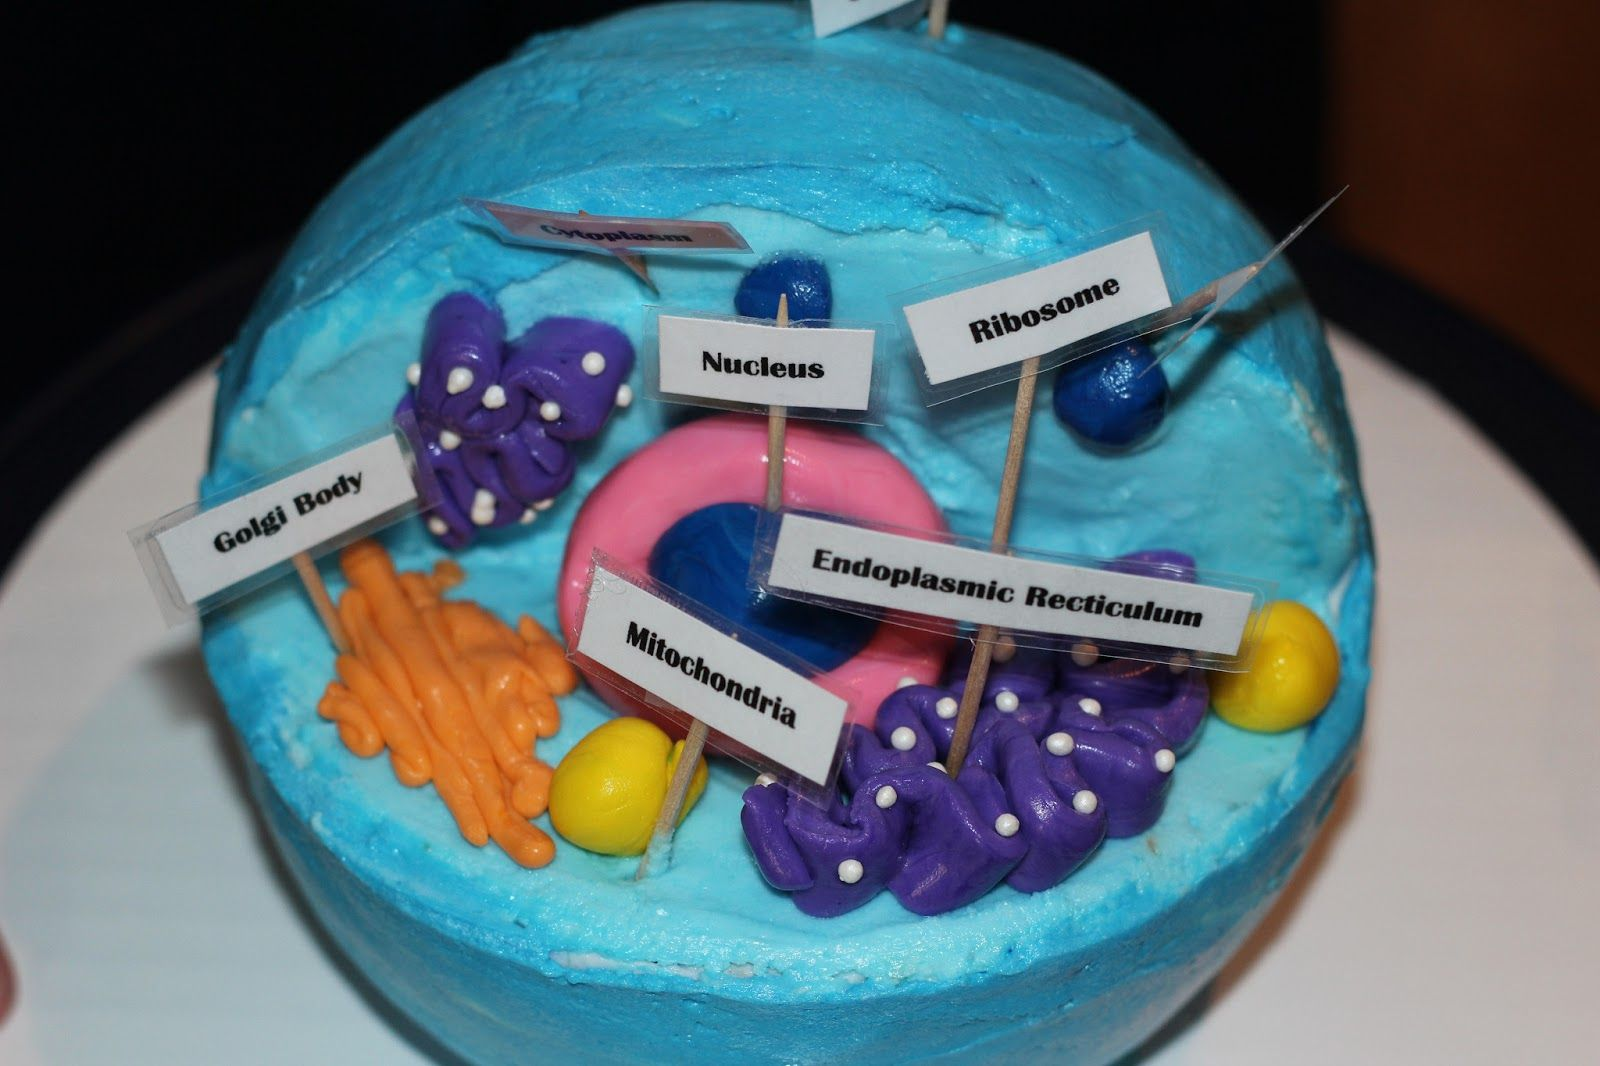 D plant cell cakes are a fun easy way to learn about plant cells d plant cell cakes are a fun easy way to learn about plant cells cell structure and organelles description from pinterest i searched for th pooptronica Images